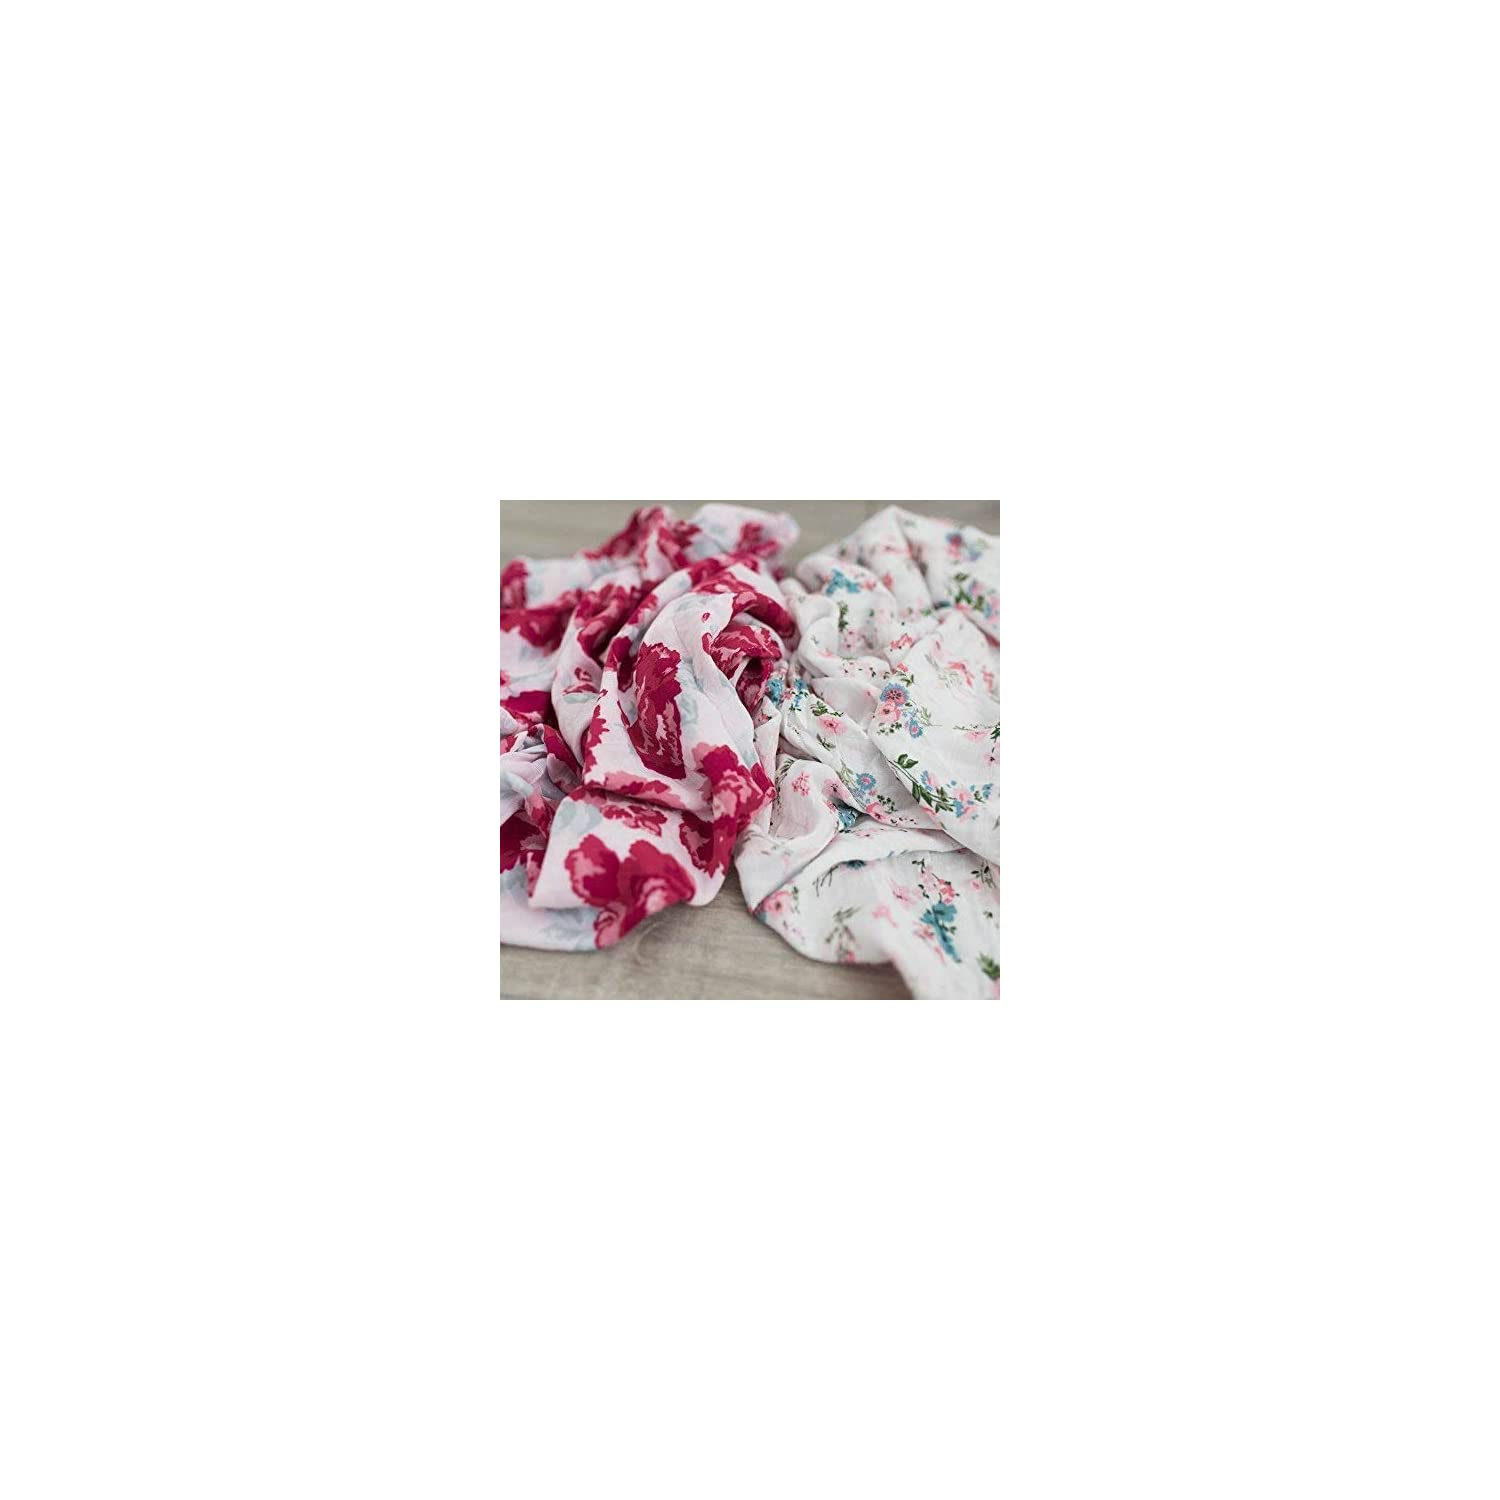 2 Pack Softest Bamboo Muslin Swaddle Blankets for Baby 70% Bamboo 30% Cotton XL 47″x 47″ by Graced Soft Luxuries (Floral Garden)